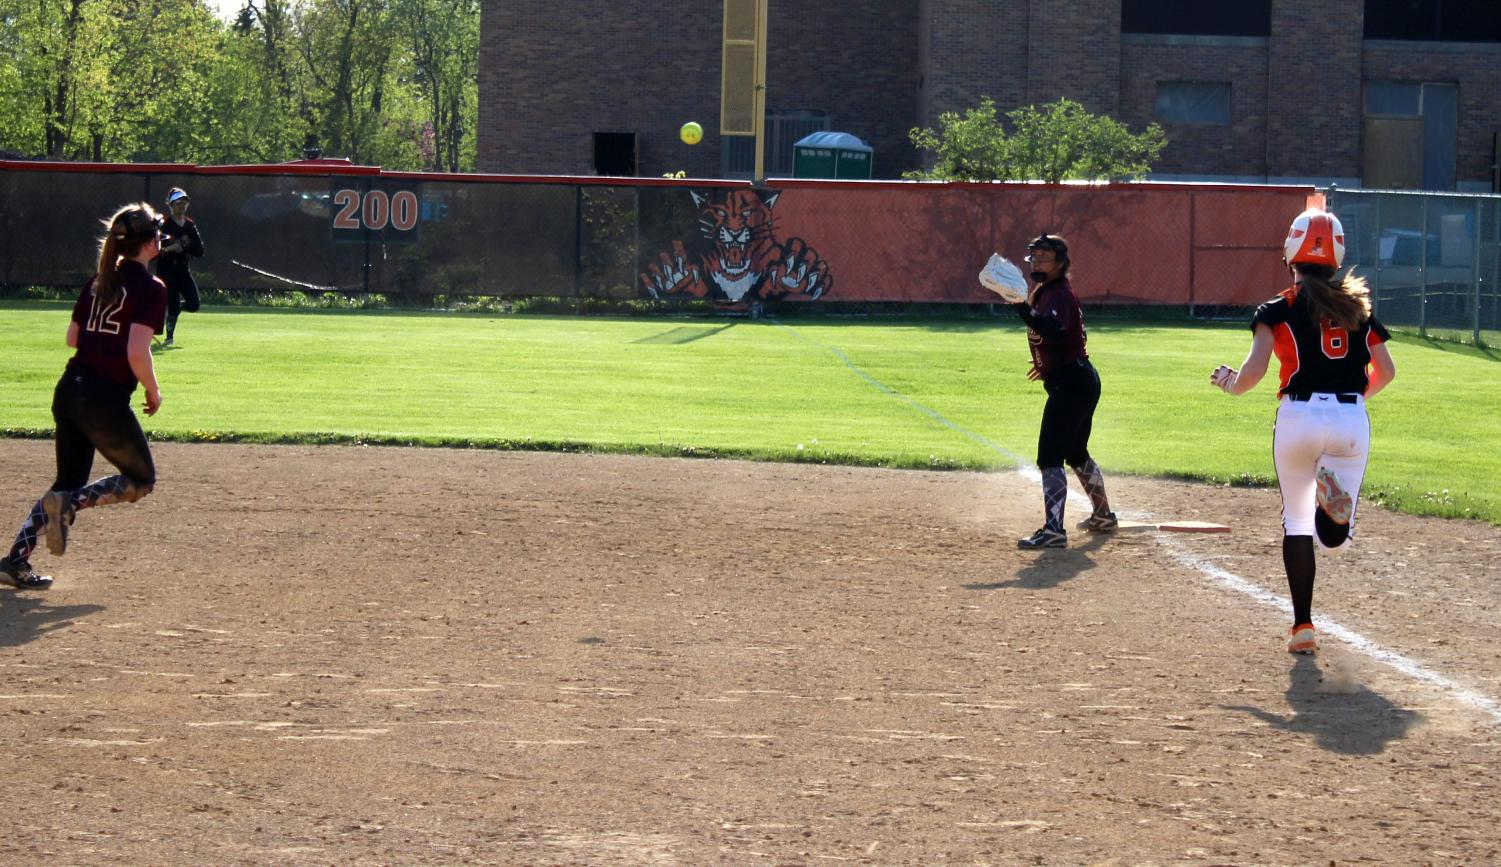 The+Zion+Benton+Zee-Bees+ended+the+third+inning+by+throwing+out+Katie+Jahncke+at+first+base.+